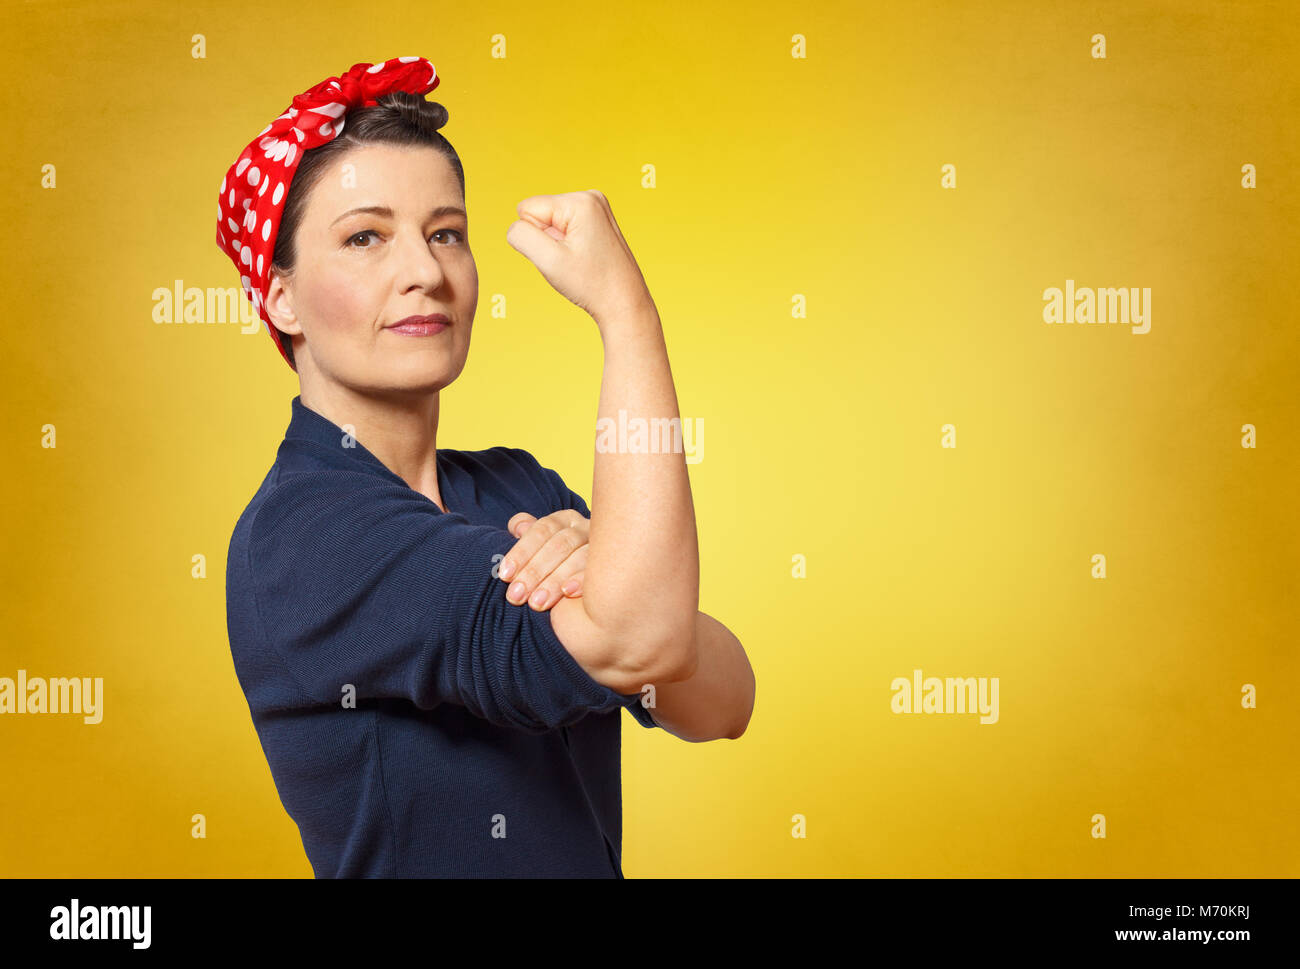 Self-confident middle aged woman with a clenched fist rolling up her sleeve, text space, tribute to american icon - Stock Image